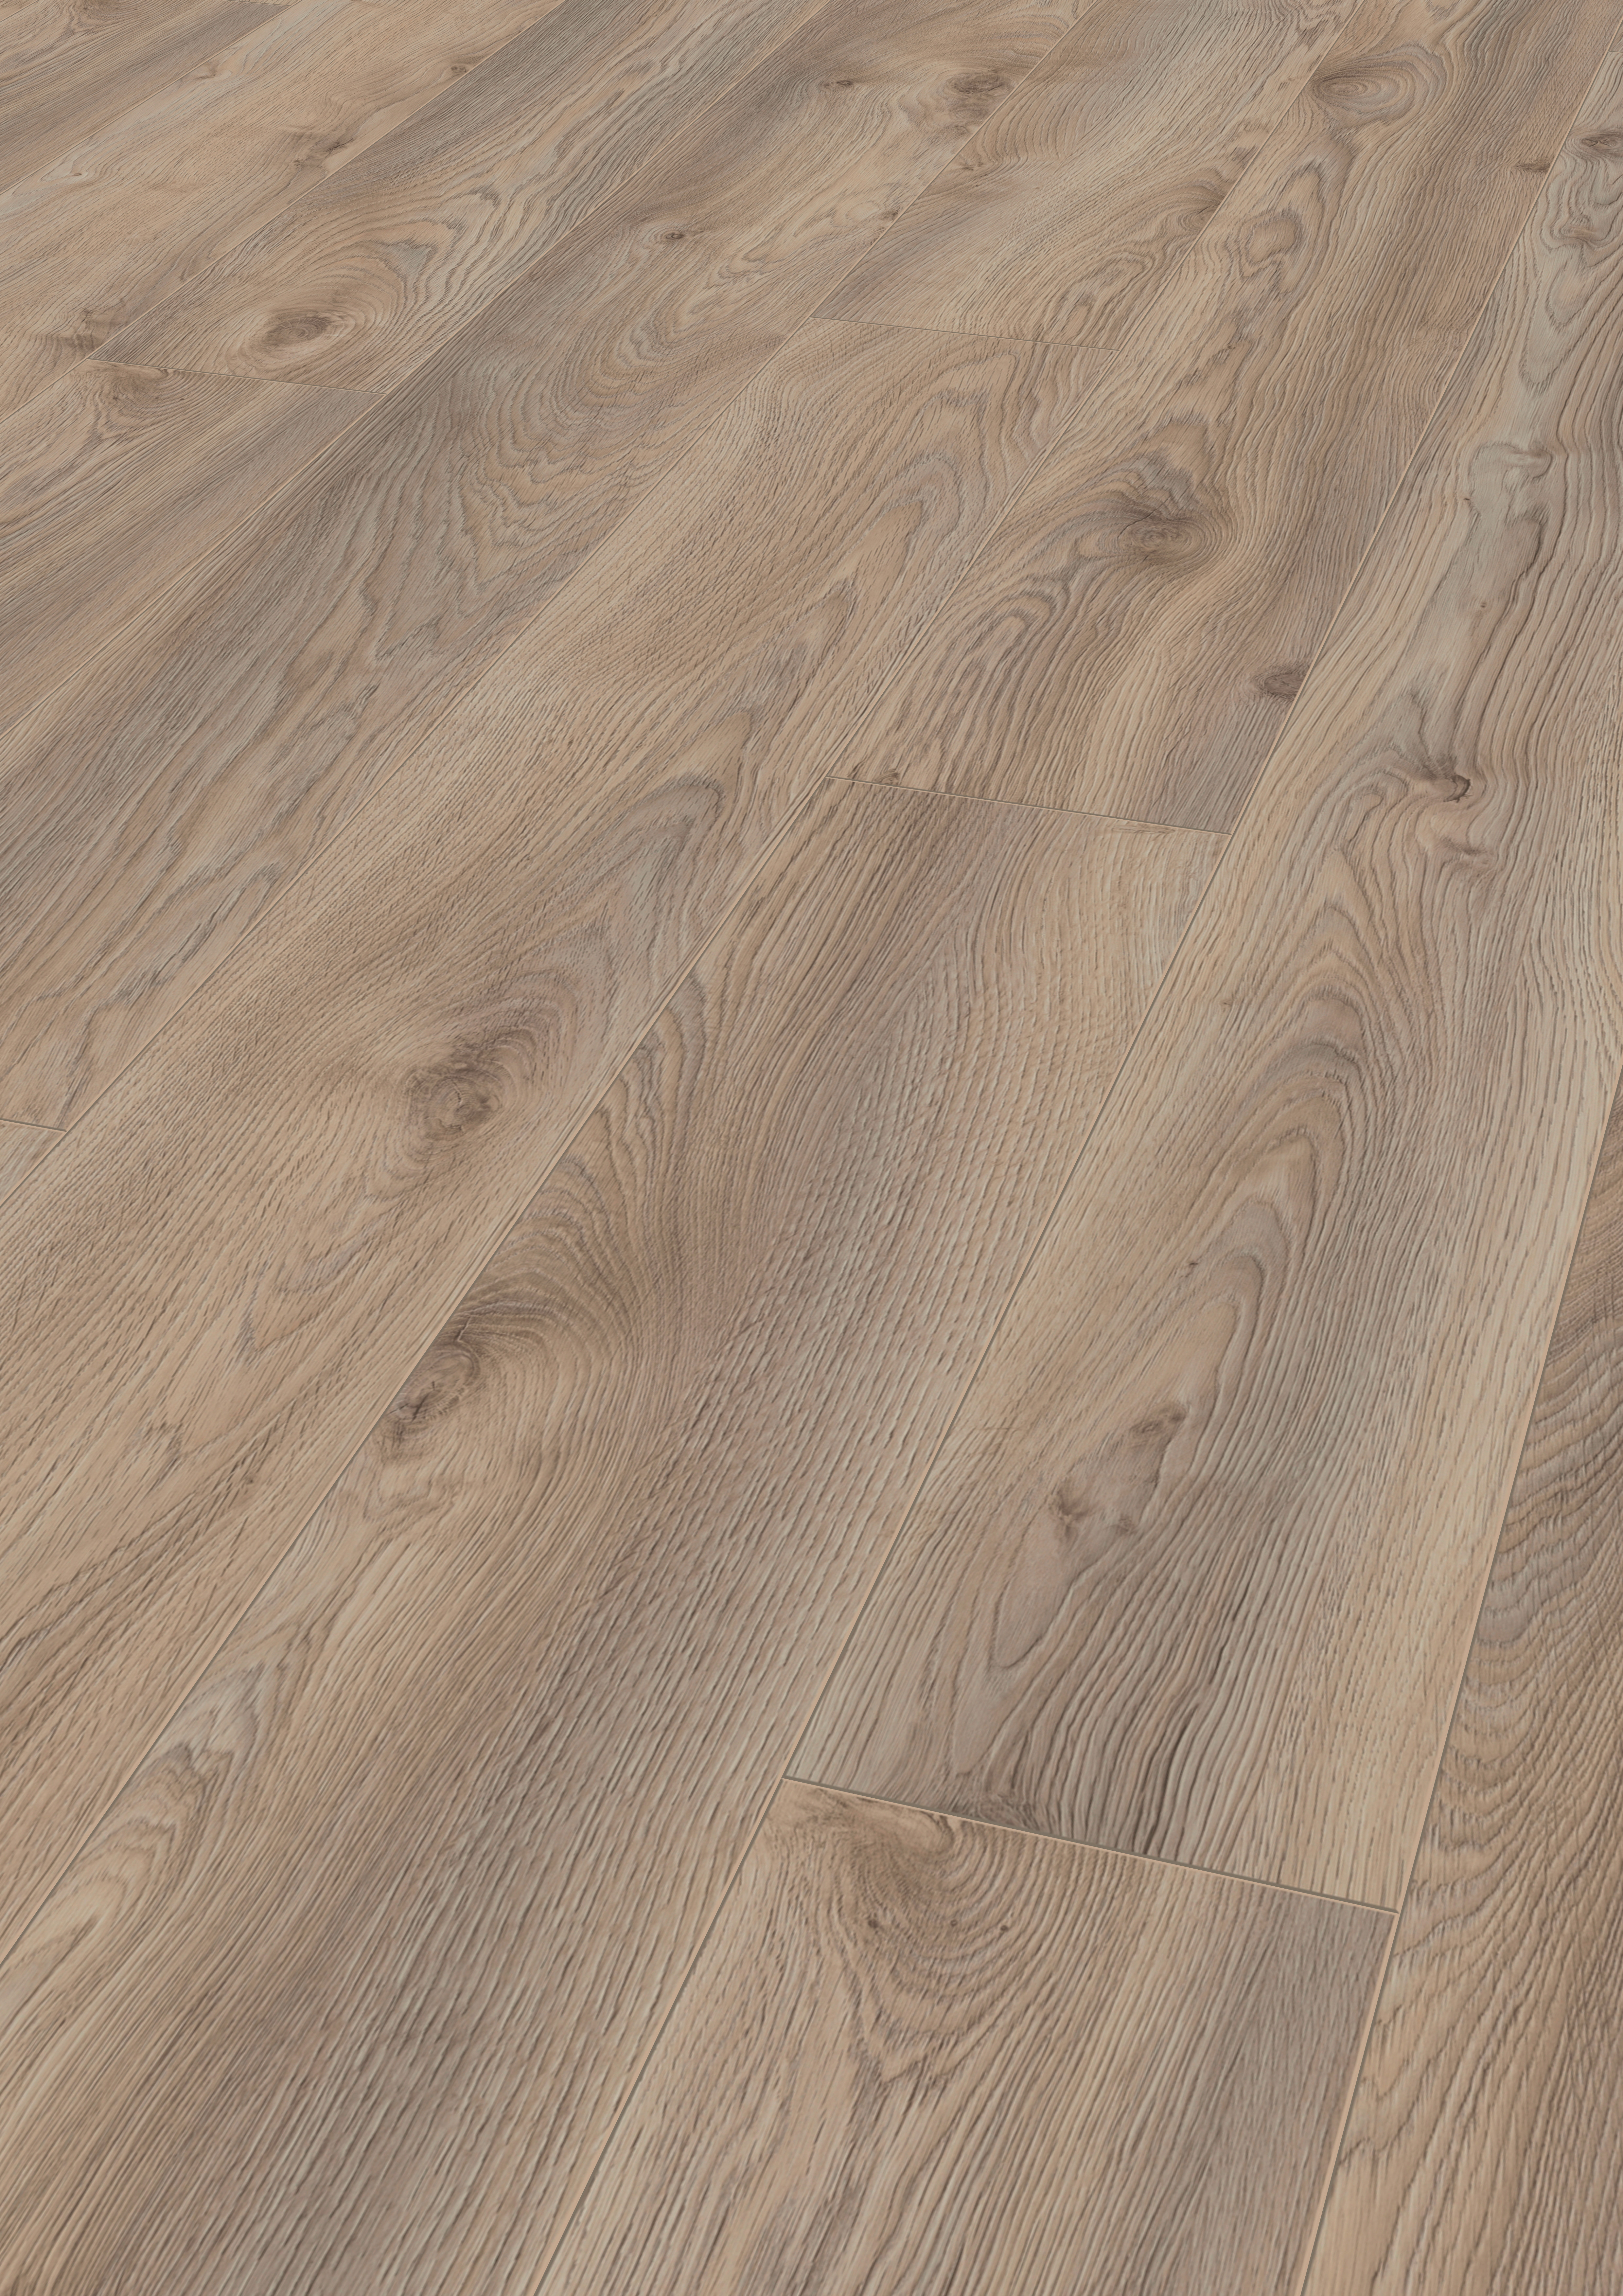 discount hardwood flooring mississauga of mammut laminate flooring in country house plank style kronotex for download picture amp